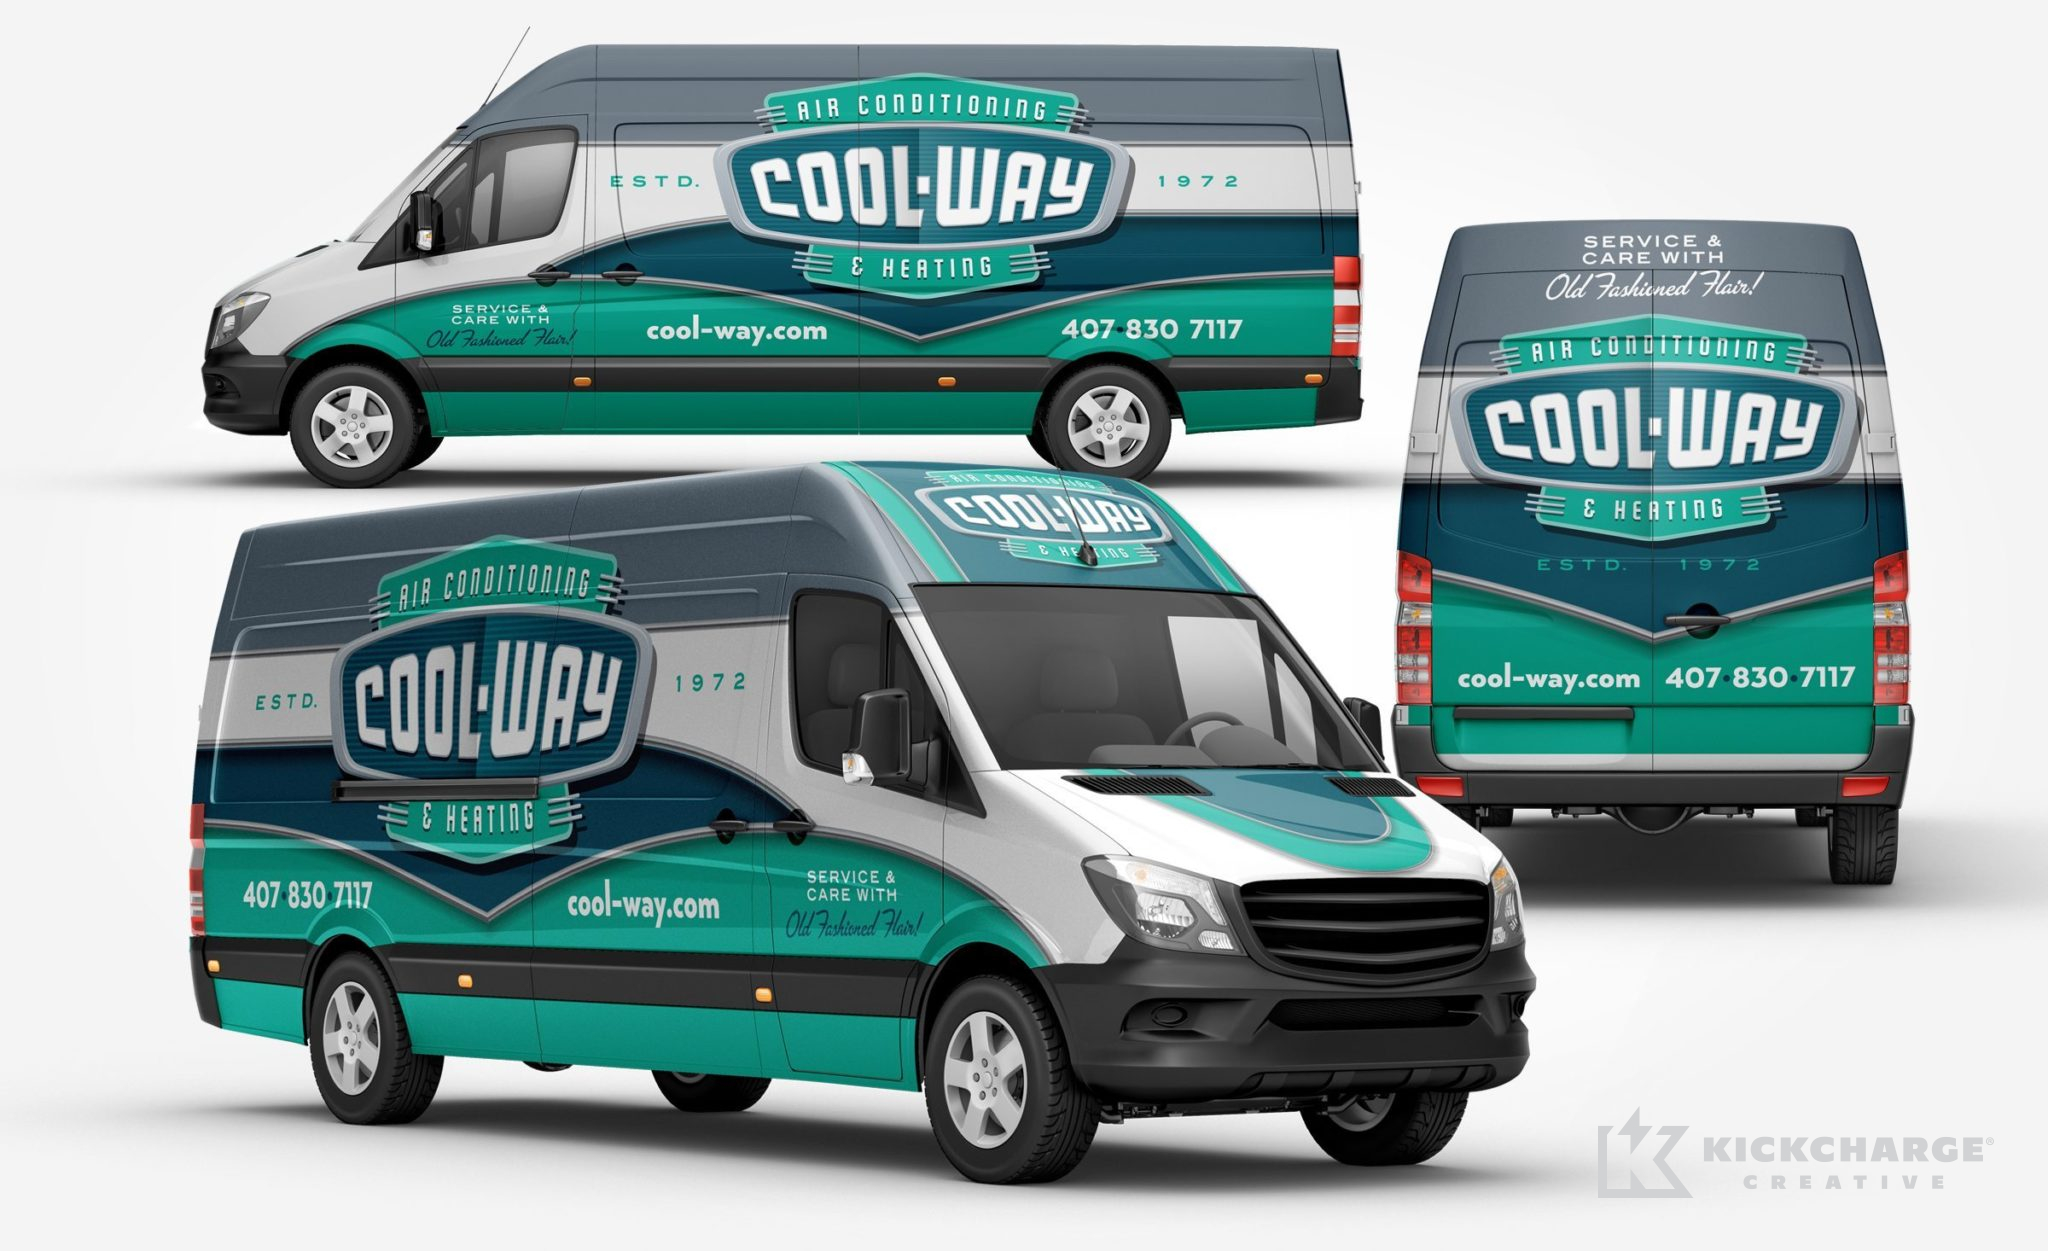 cool-way air conditioning & heating